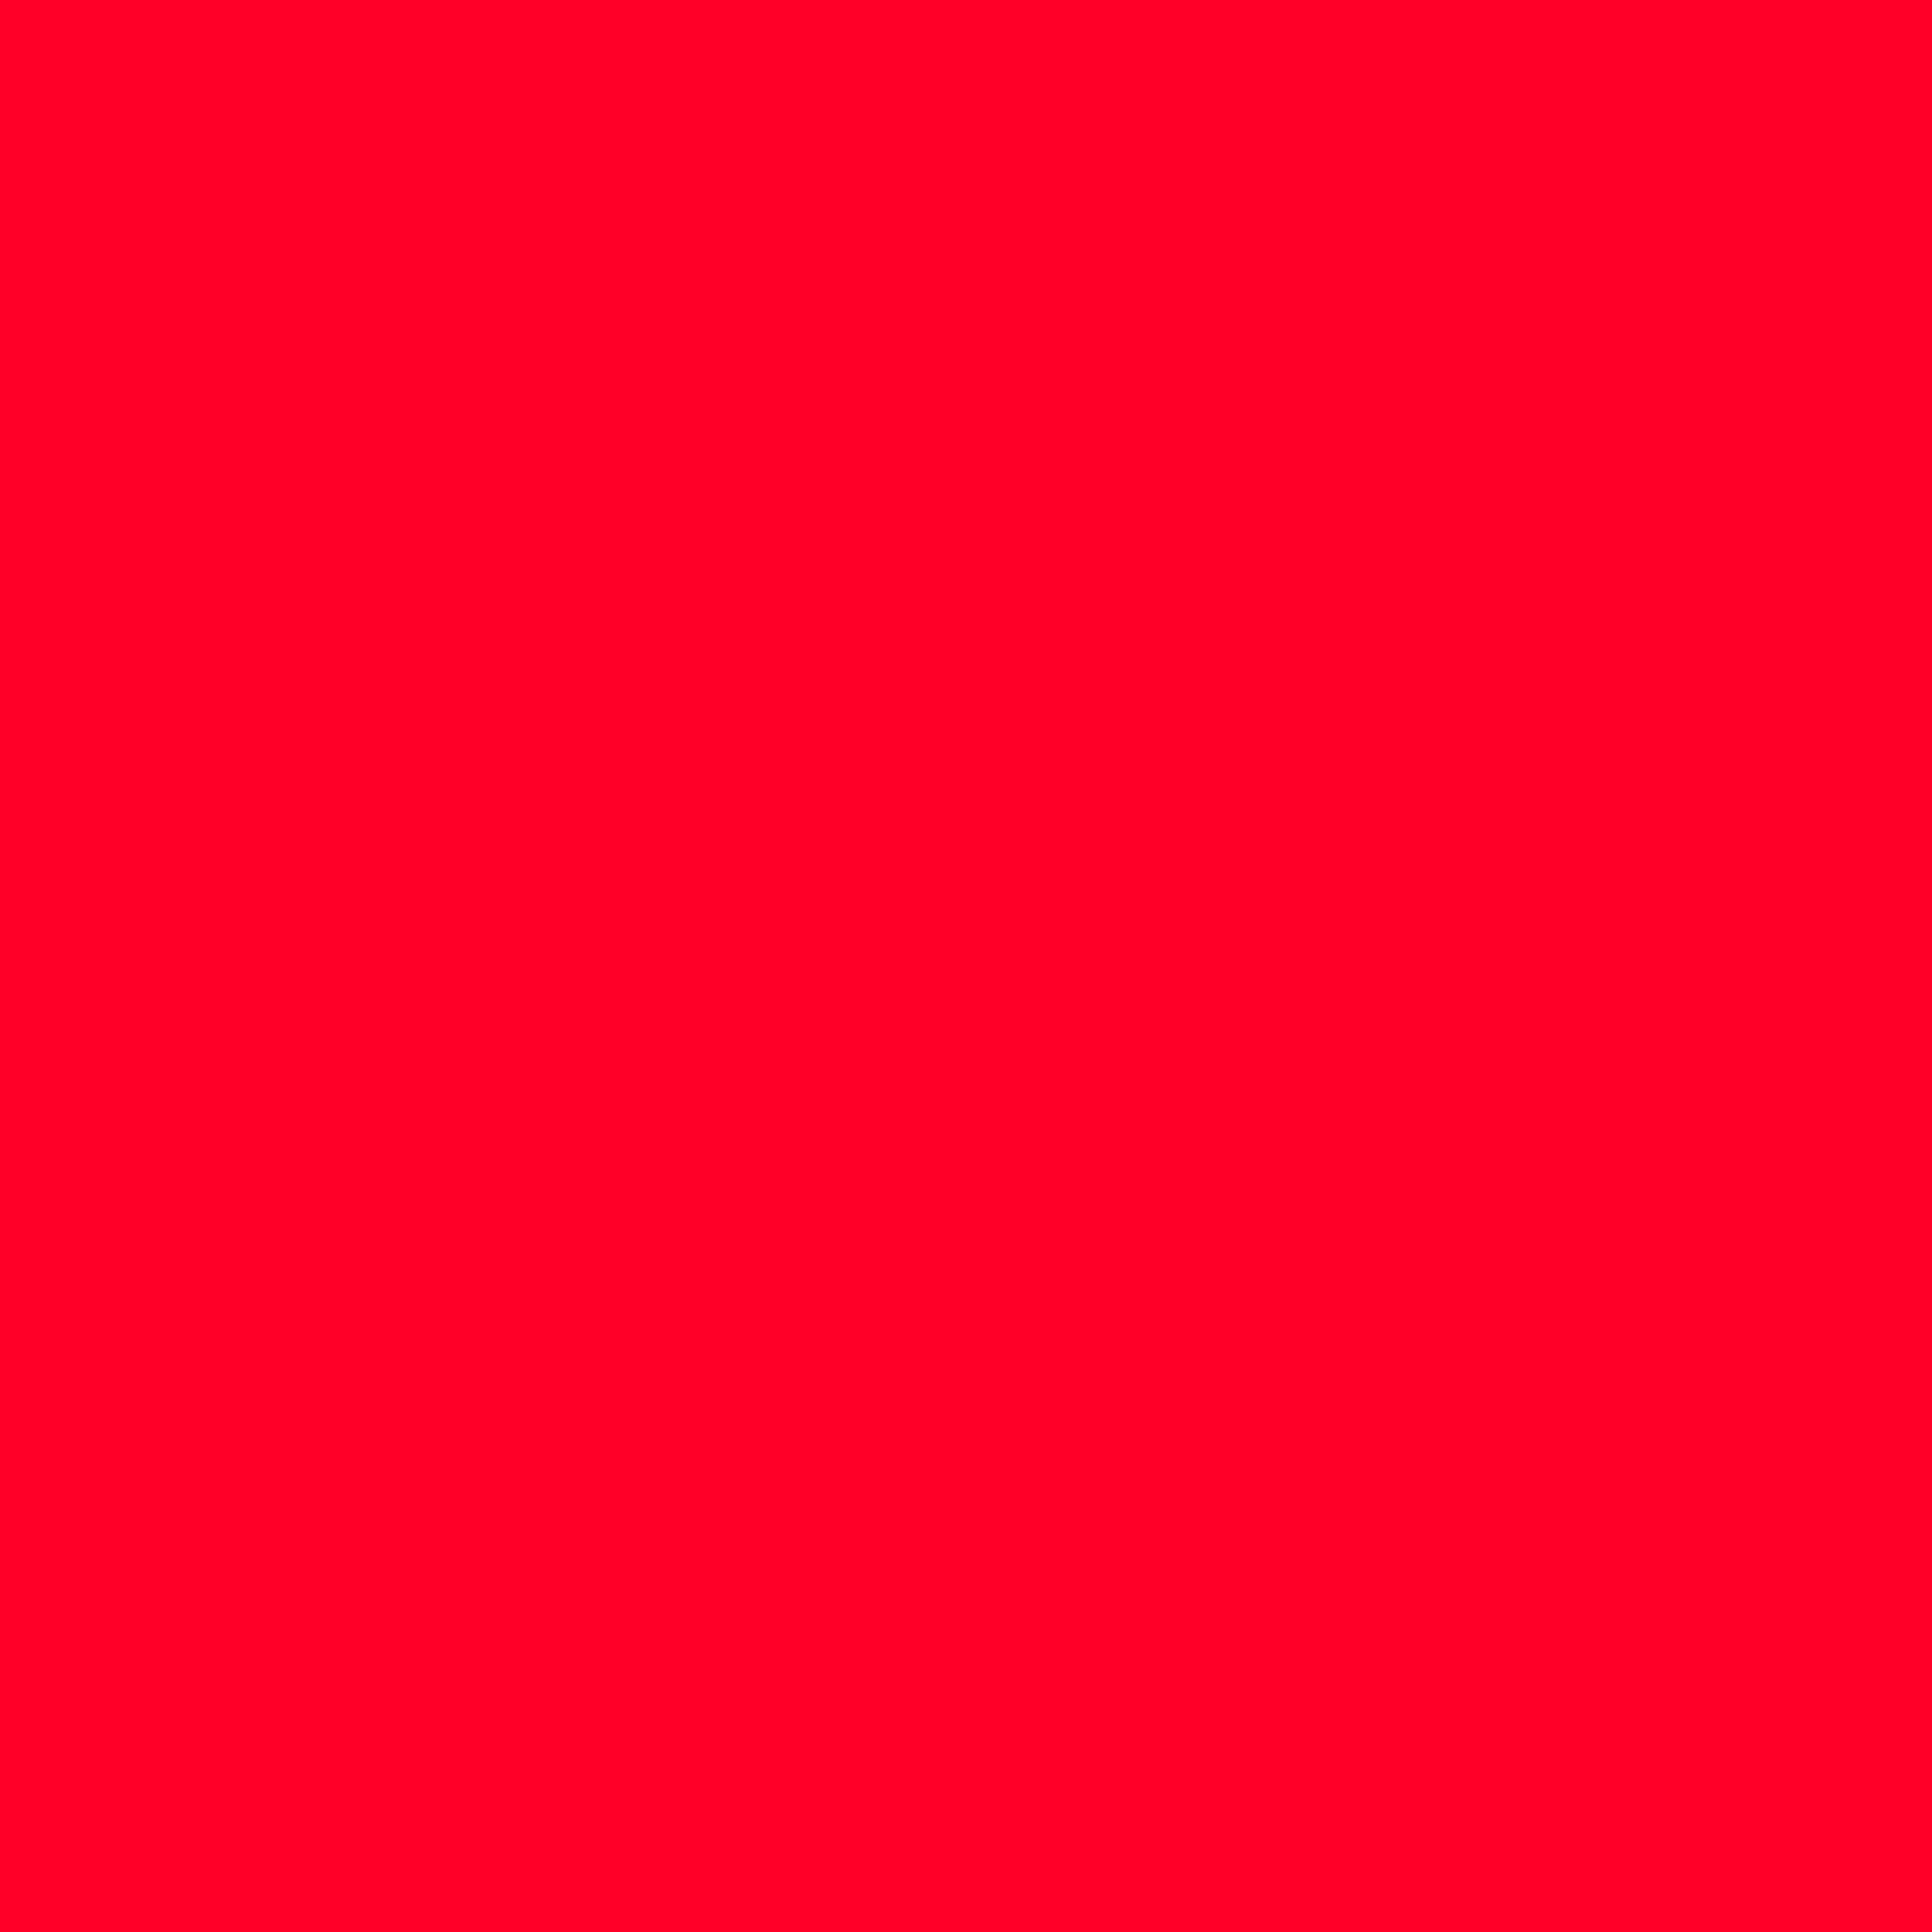 2732x2732 Ruddy Solid Color Background